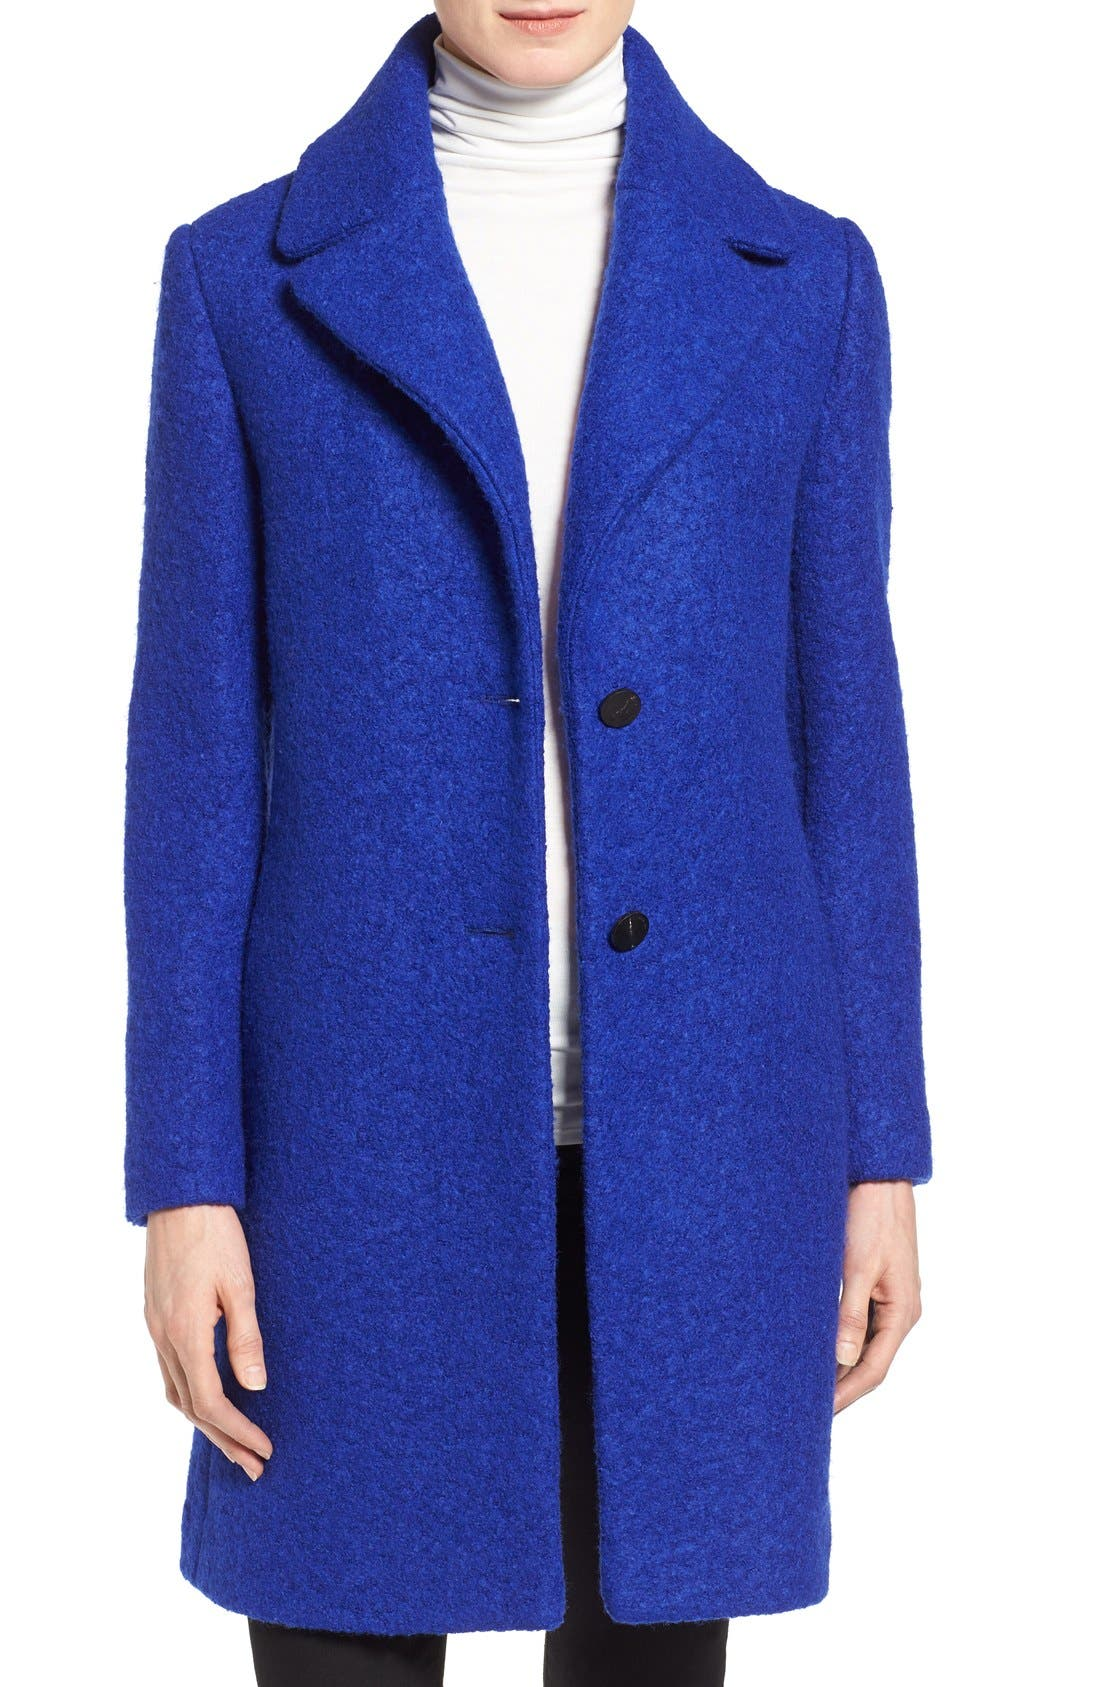 Tahari 'Tessa' Boiled Wool Blend Coat